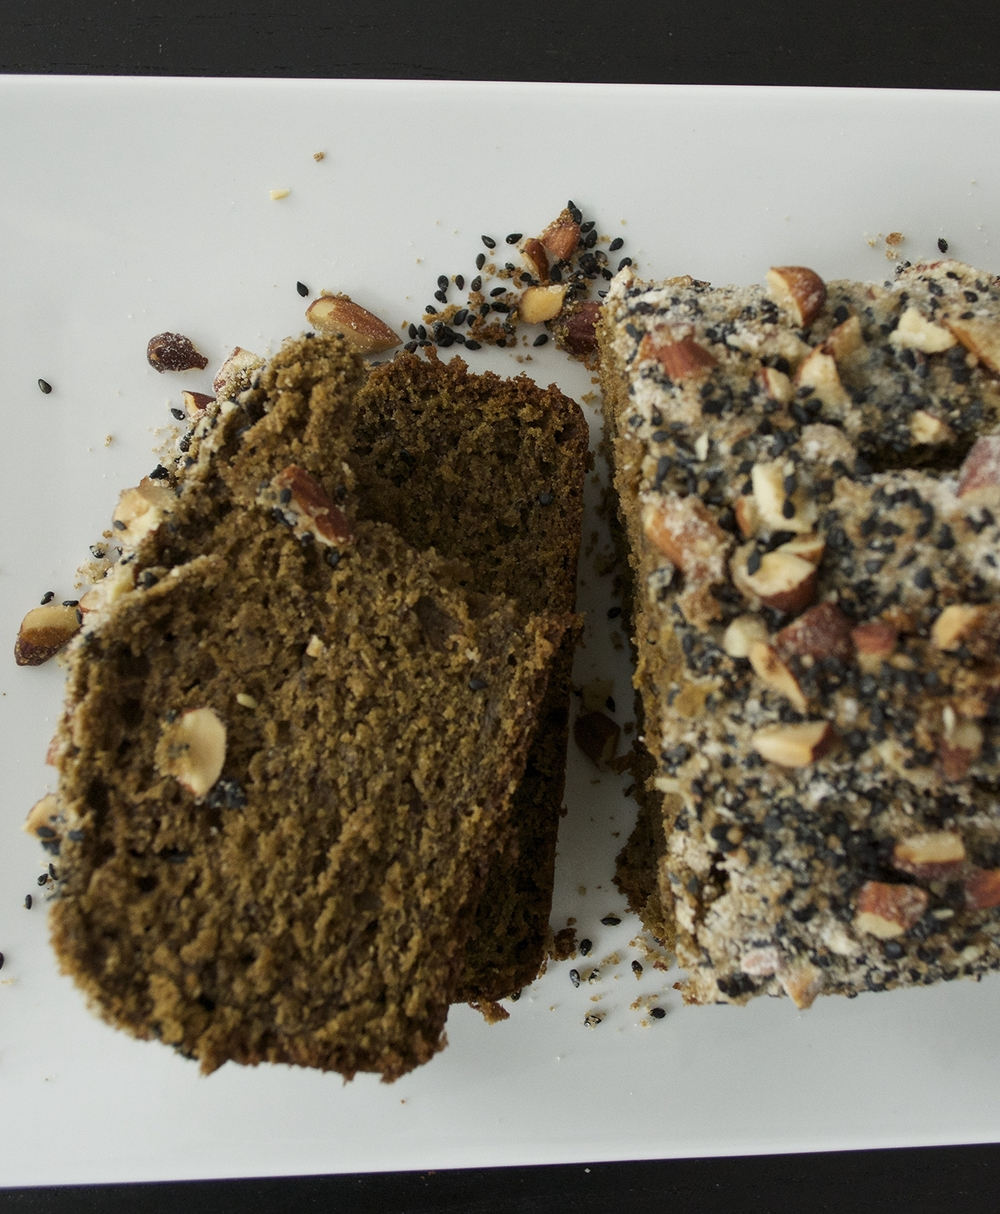 matcha-banana-bread-sesame-almond-crumble-slices-overhead.jpg